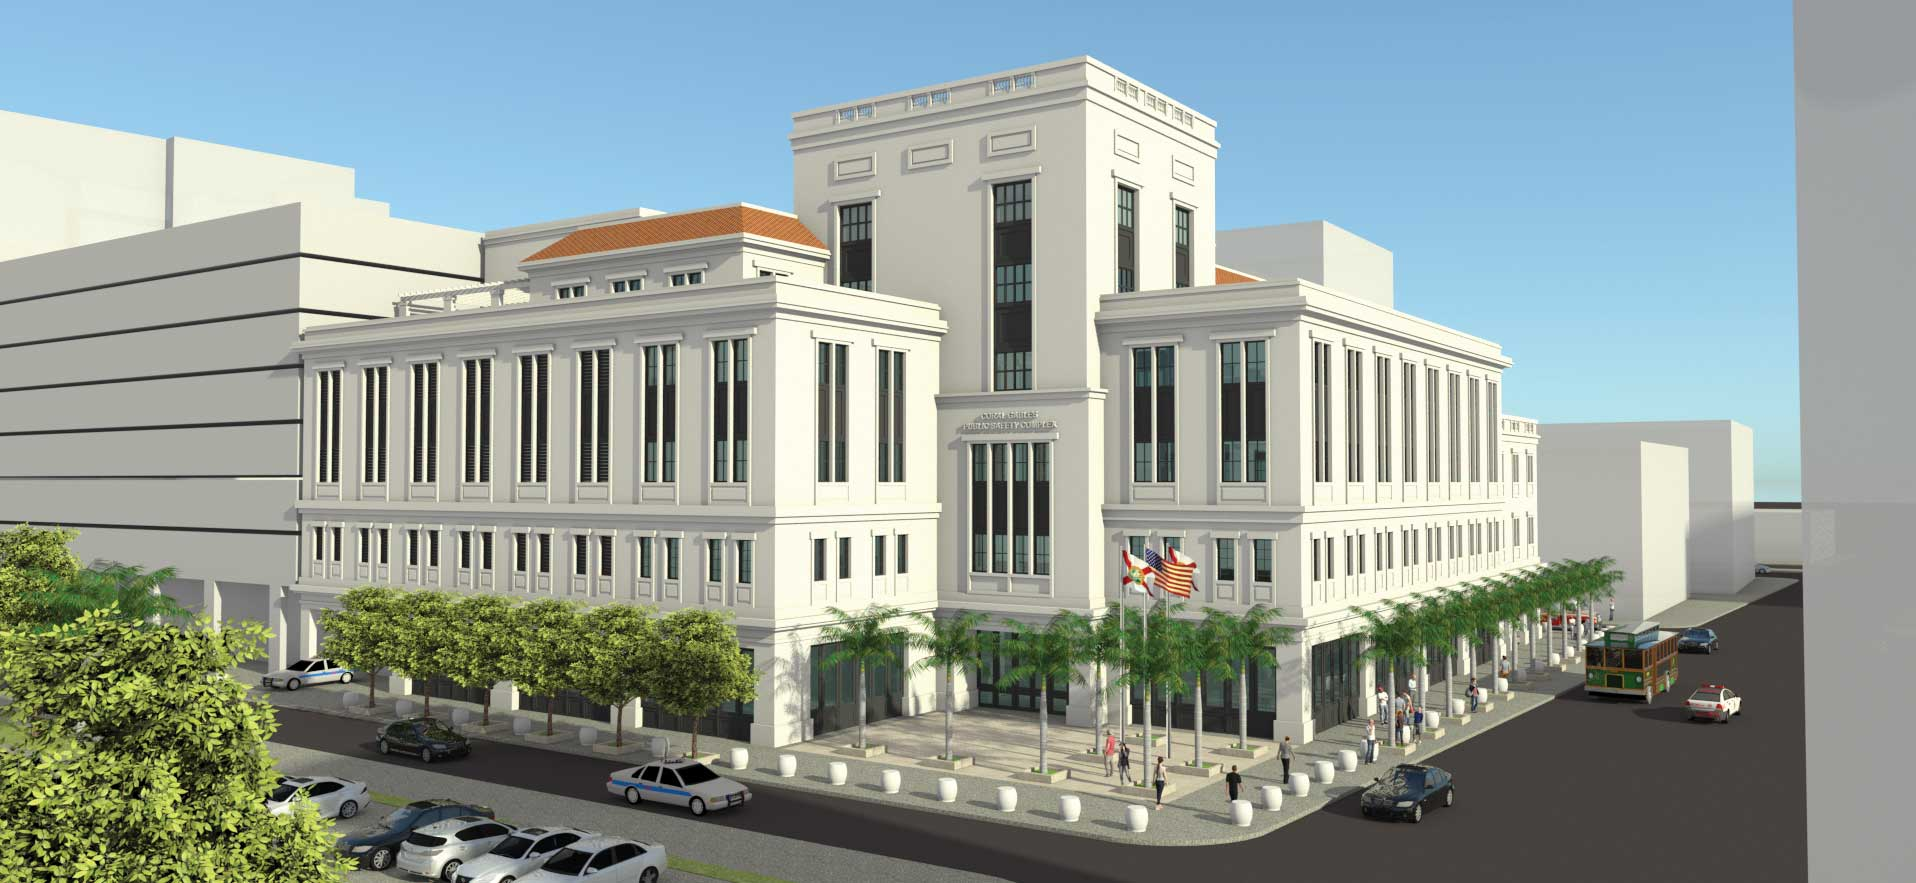 Price tag due for Coral Gables public safety building